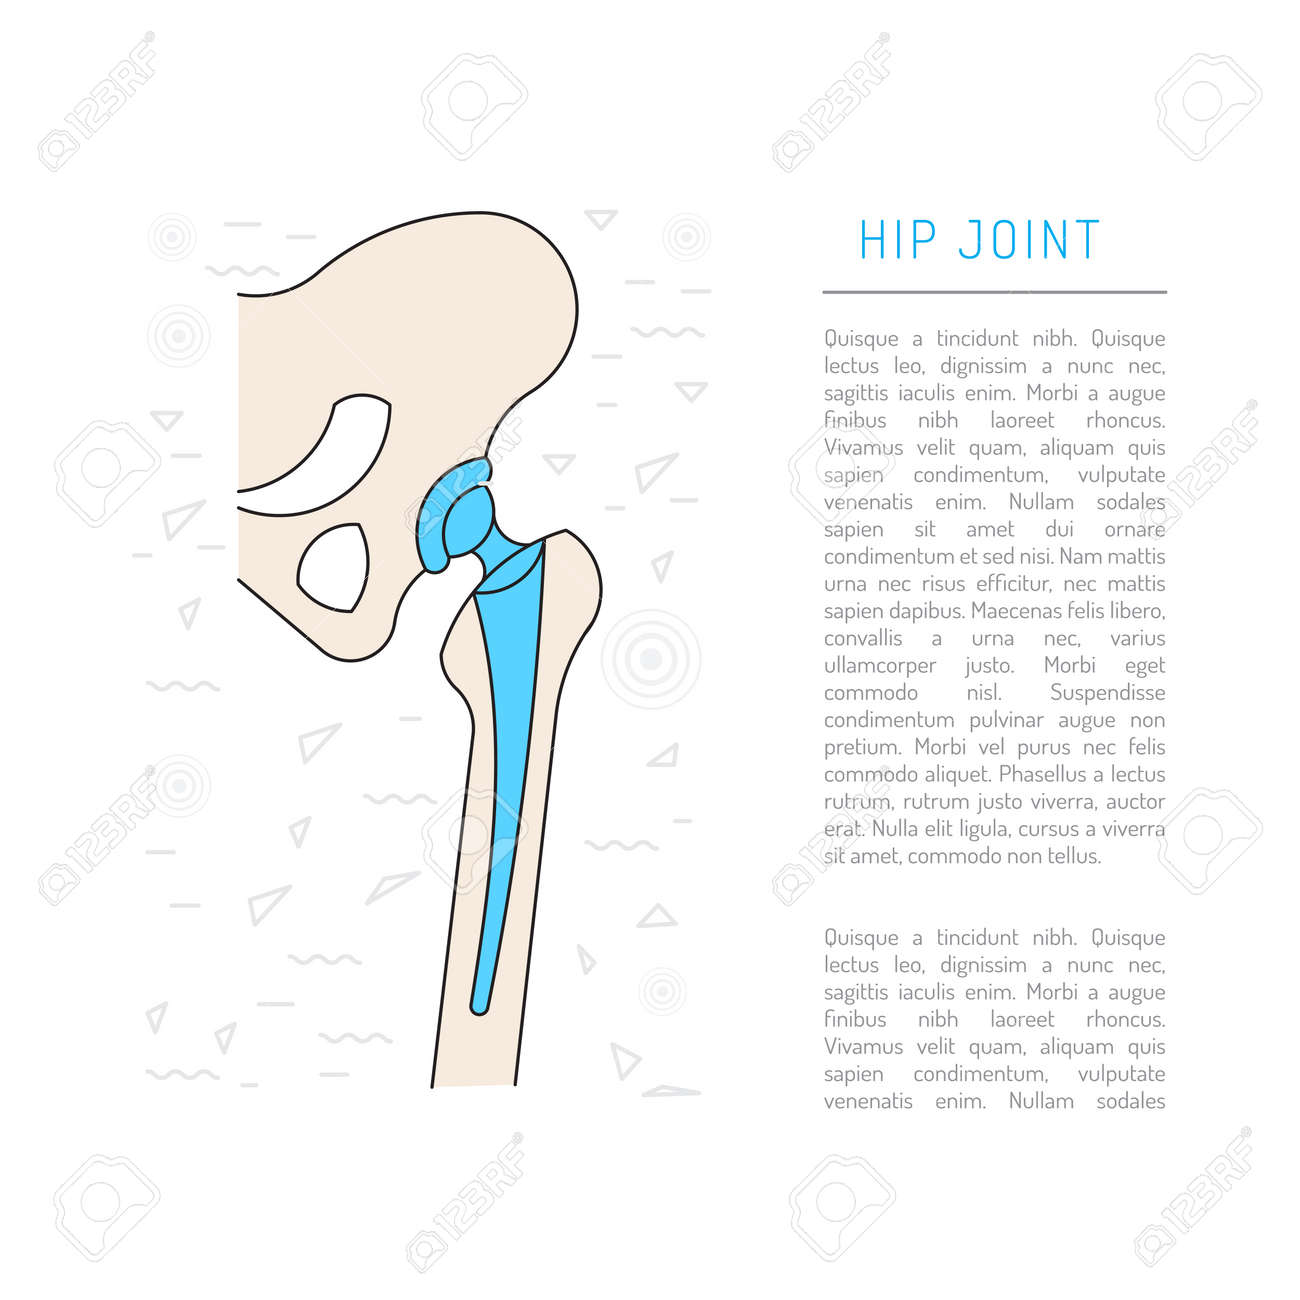 Medical Illustration Of The Structure Of The Bones Of The Hip